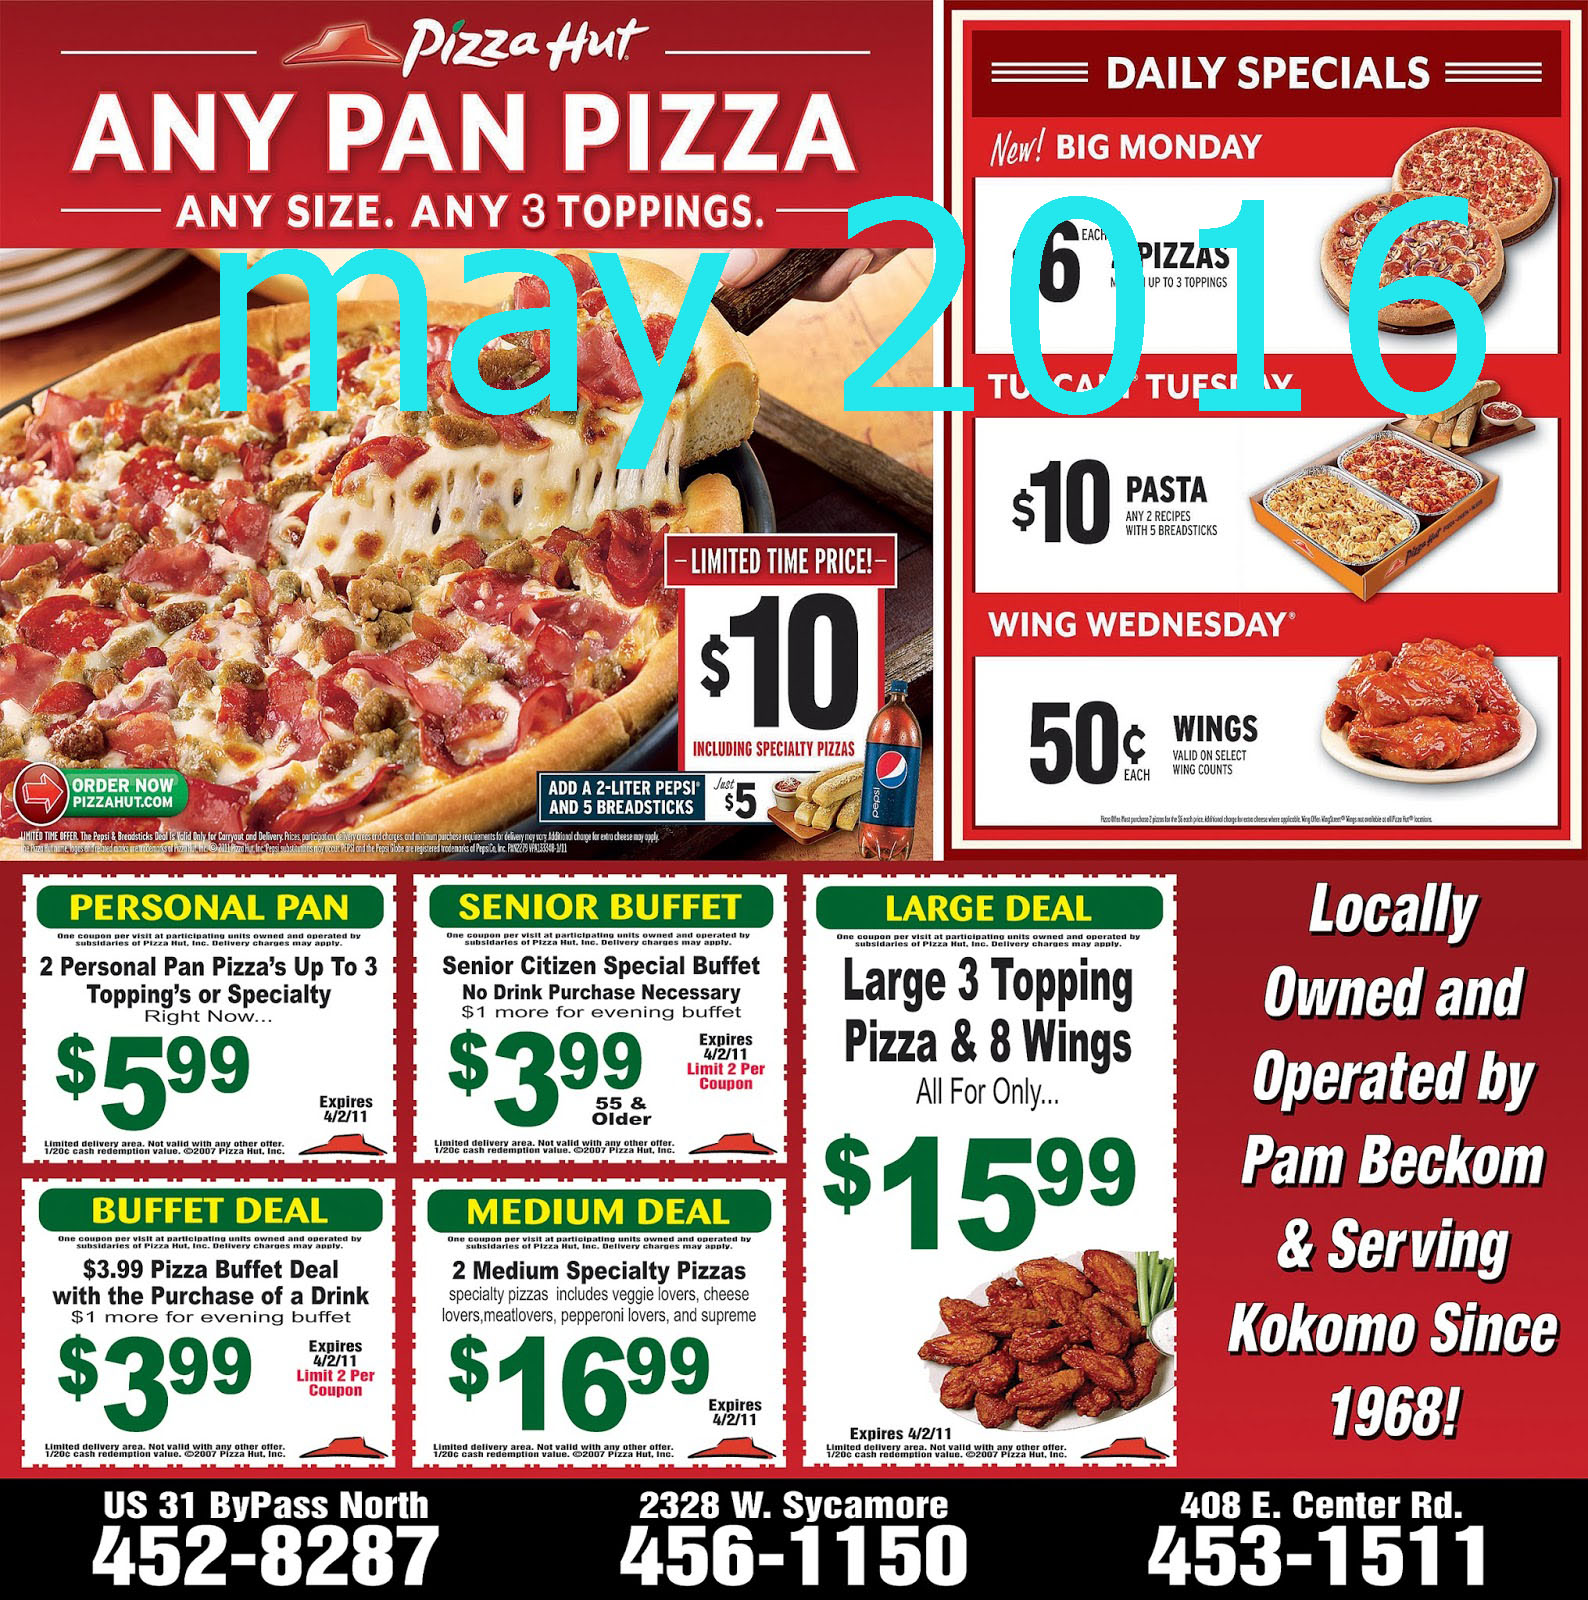 Angelina's pizza coupon code